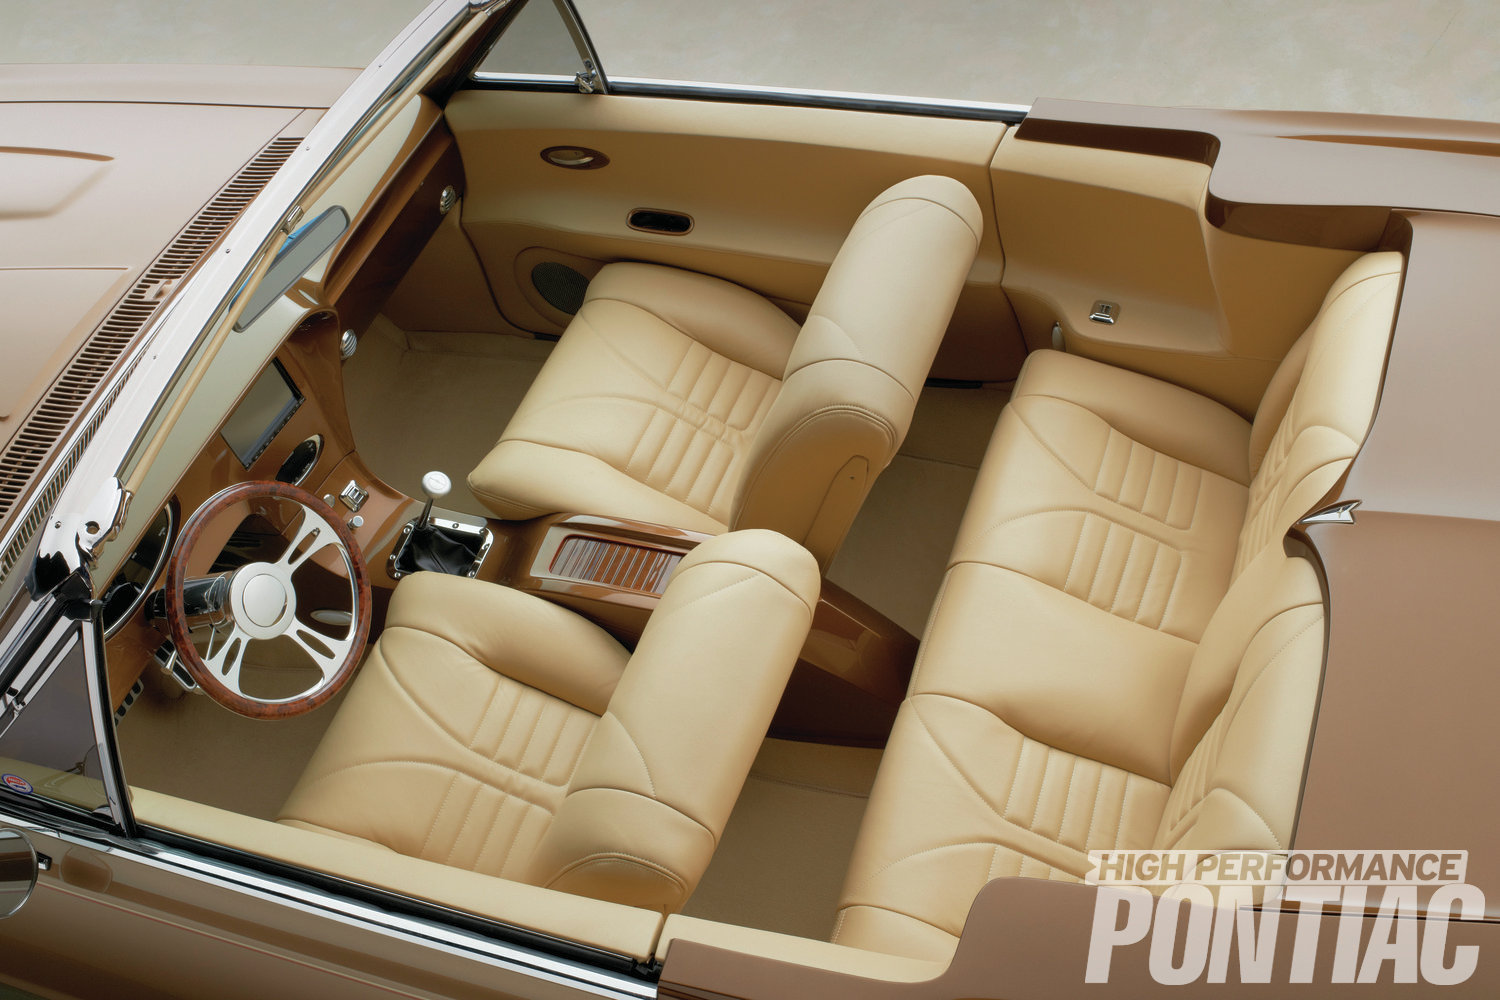 In Barista Pearl and Crème Brulee, the two-tone interior perfectly complements the Mocha Nut exterior. The seat frames remain the GTO's originals, but they've been reshaped using new foam and covered with new leather. Door and rear-seat panels were crafted by Run Rite Classics and wrapped in matching leather. The center console is a custom unit created by Run Rite Classics.